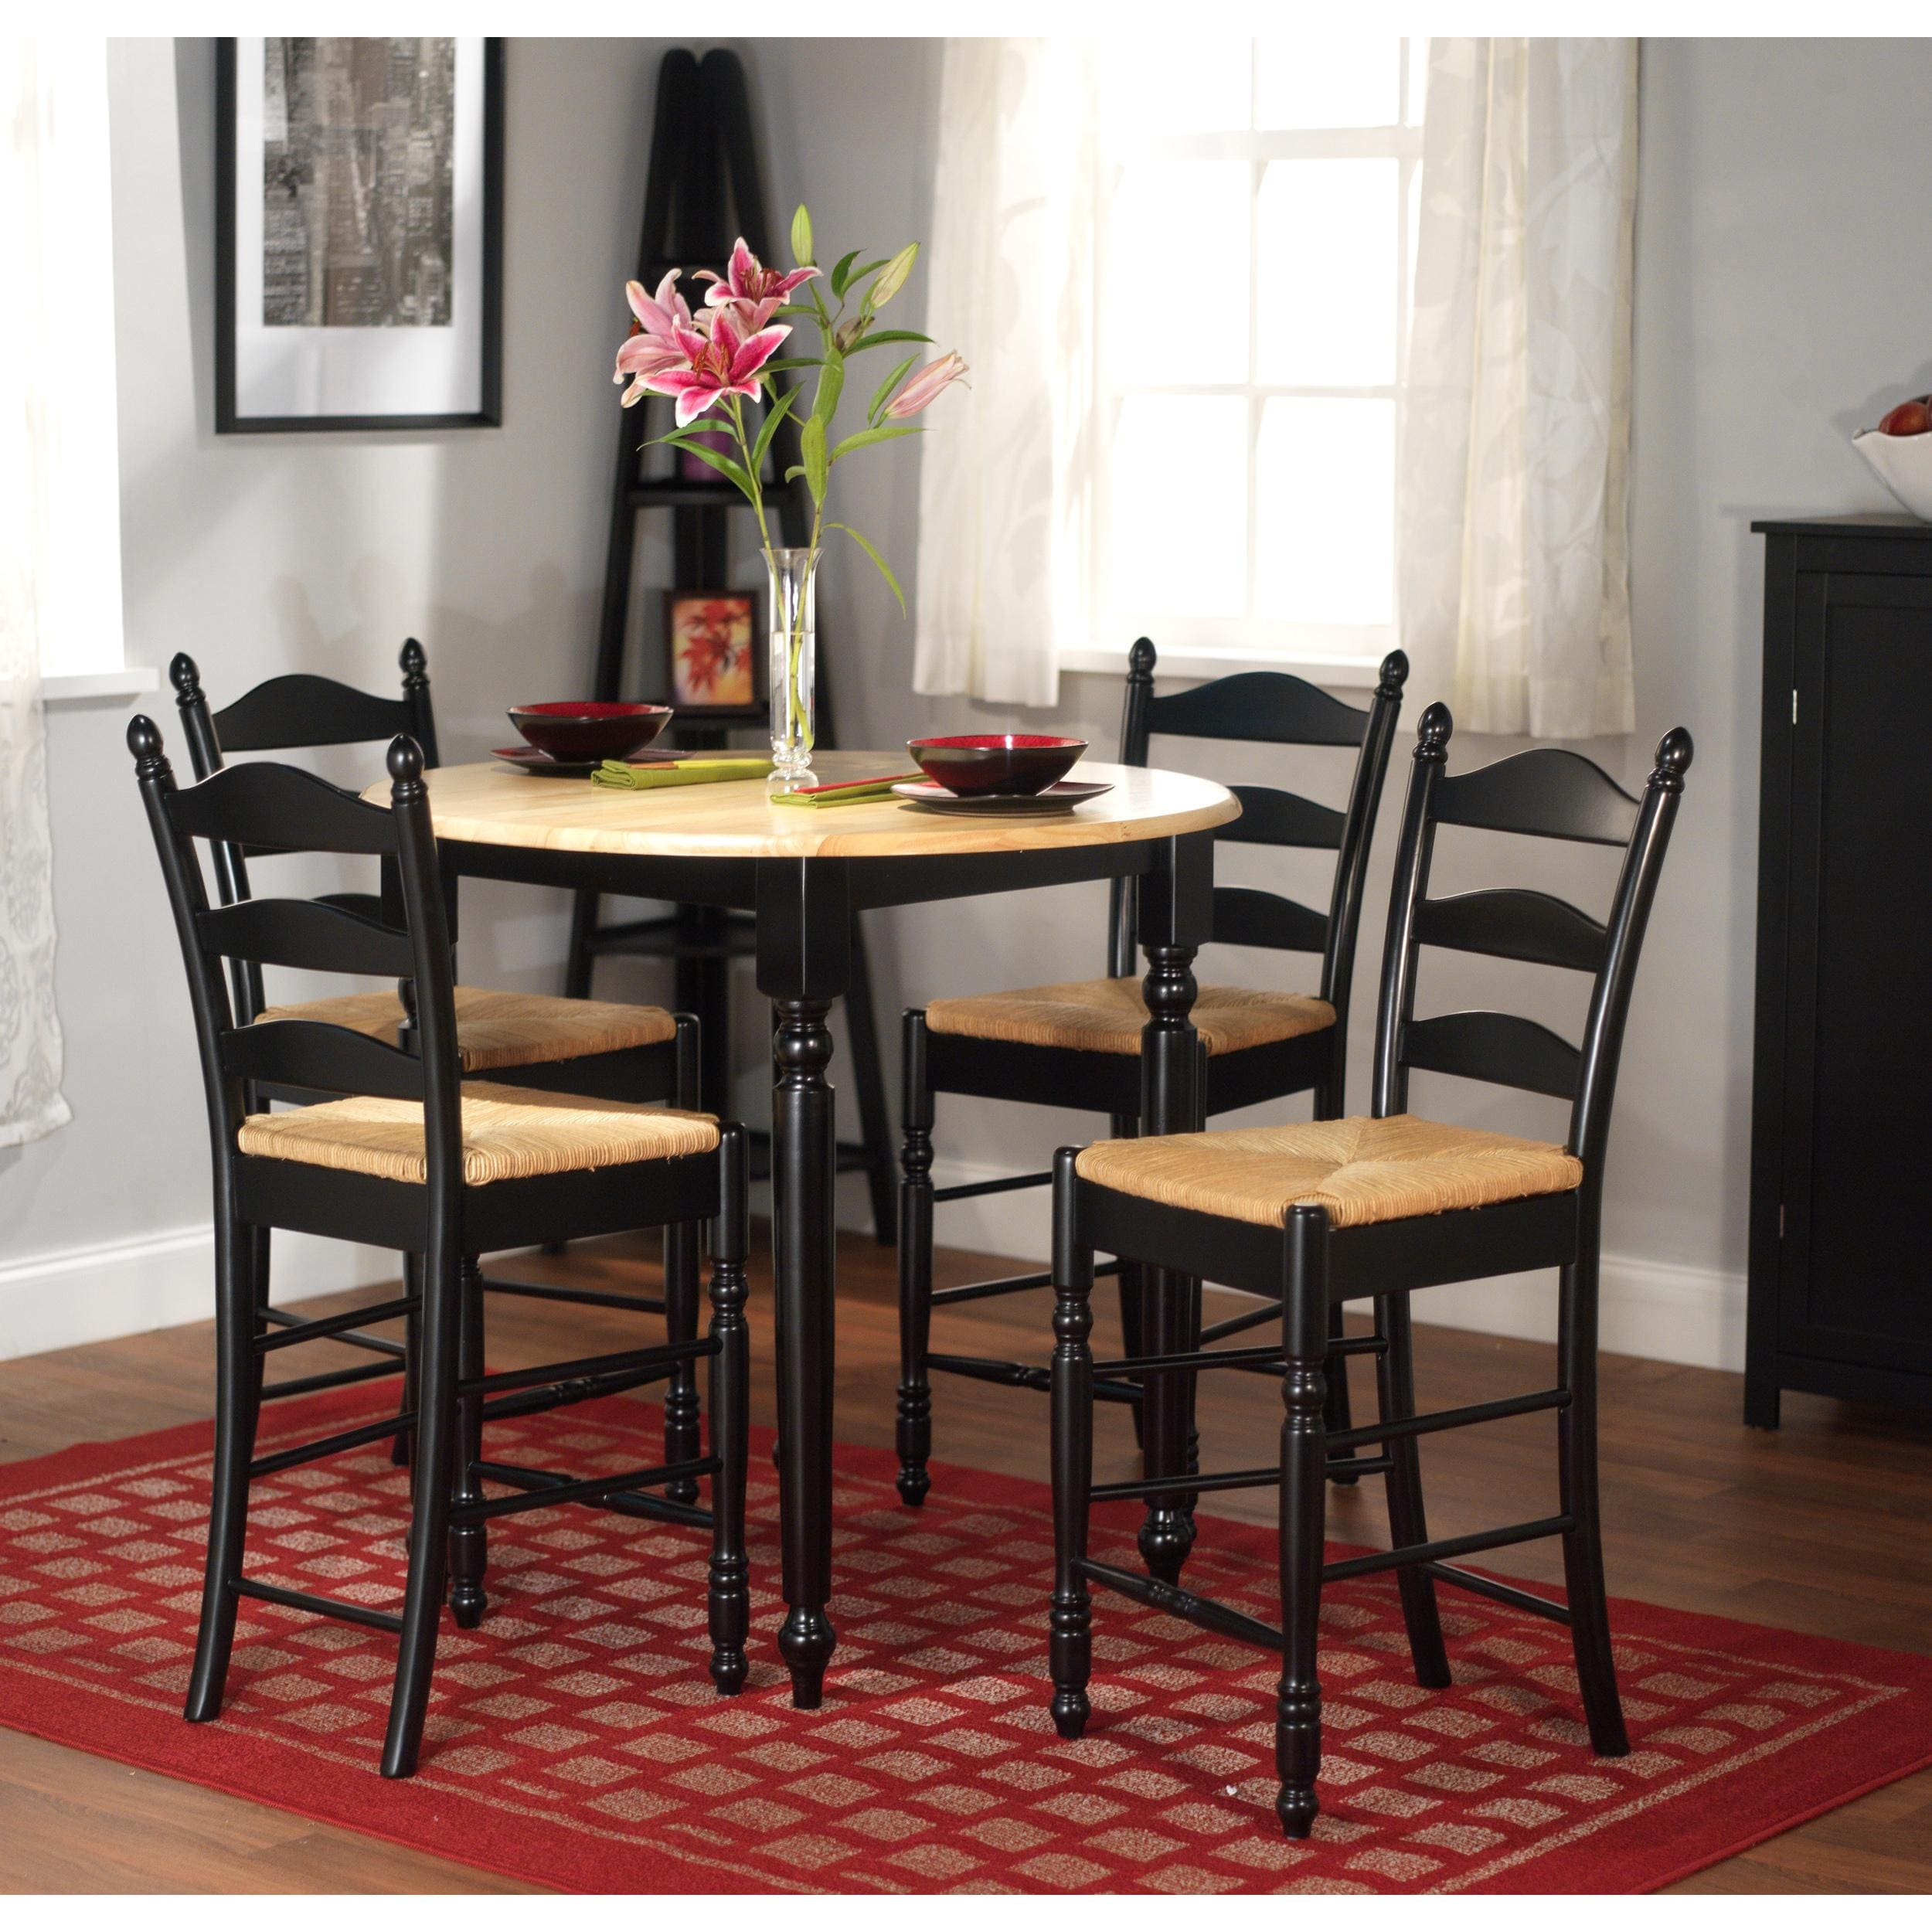 Simple Living Round Counter Height 5 Piece Dining Set 13459282